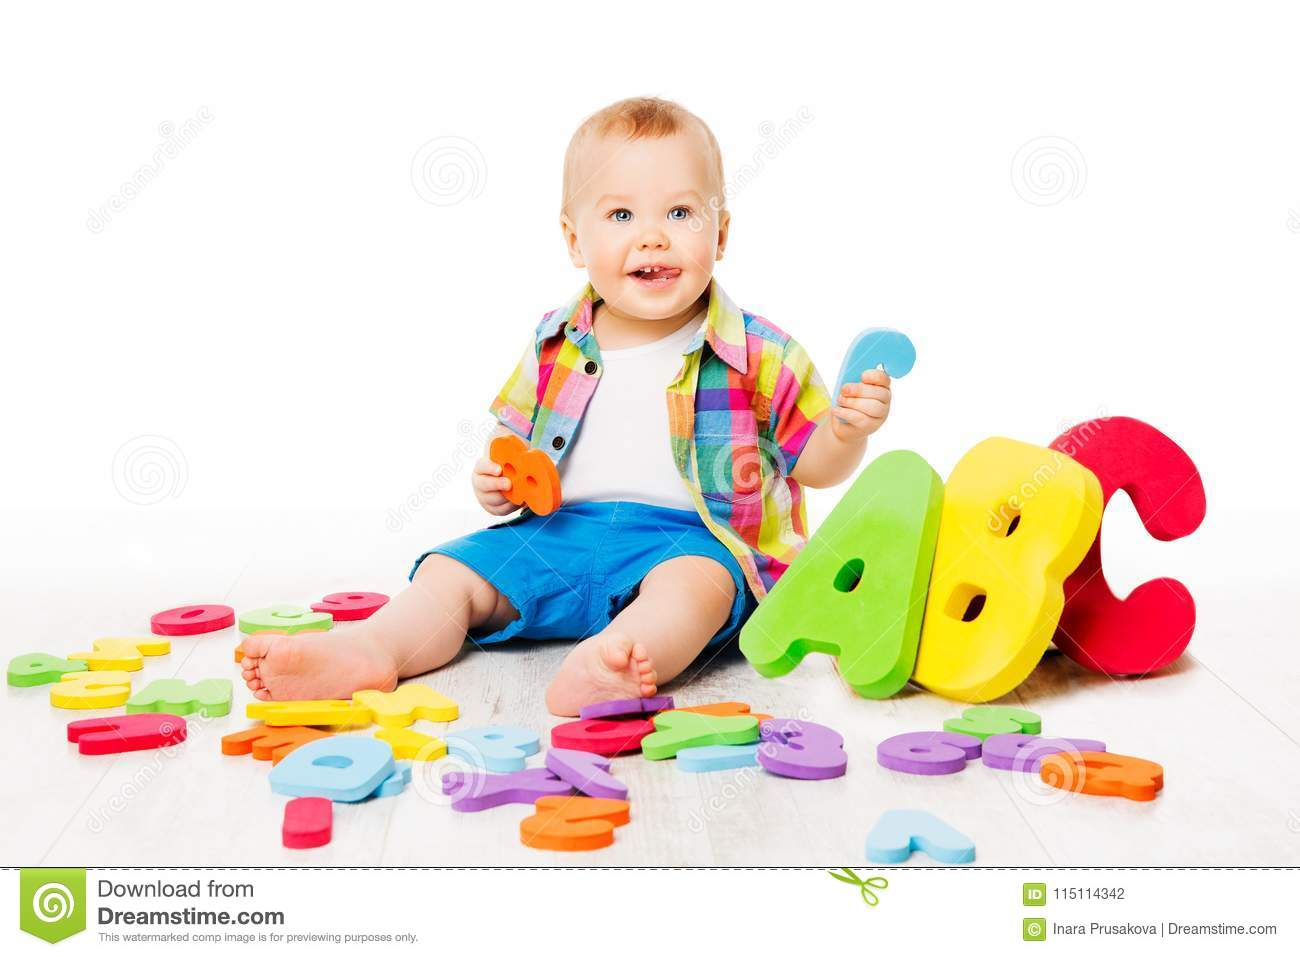 Baby Alphabet Toys, Child Playing Colorful ABC Letters on White